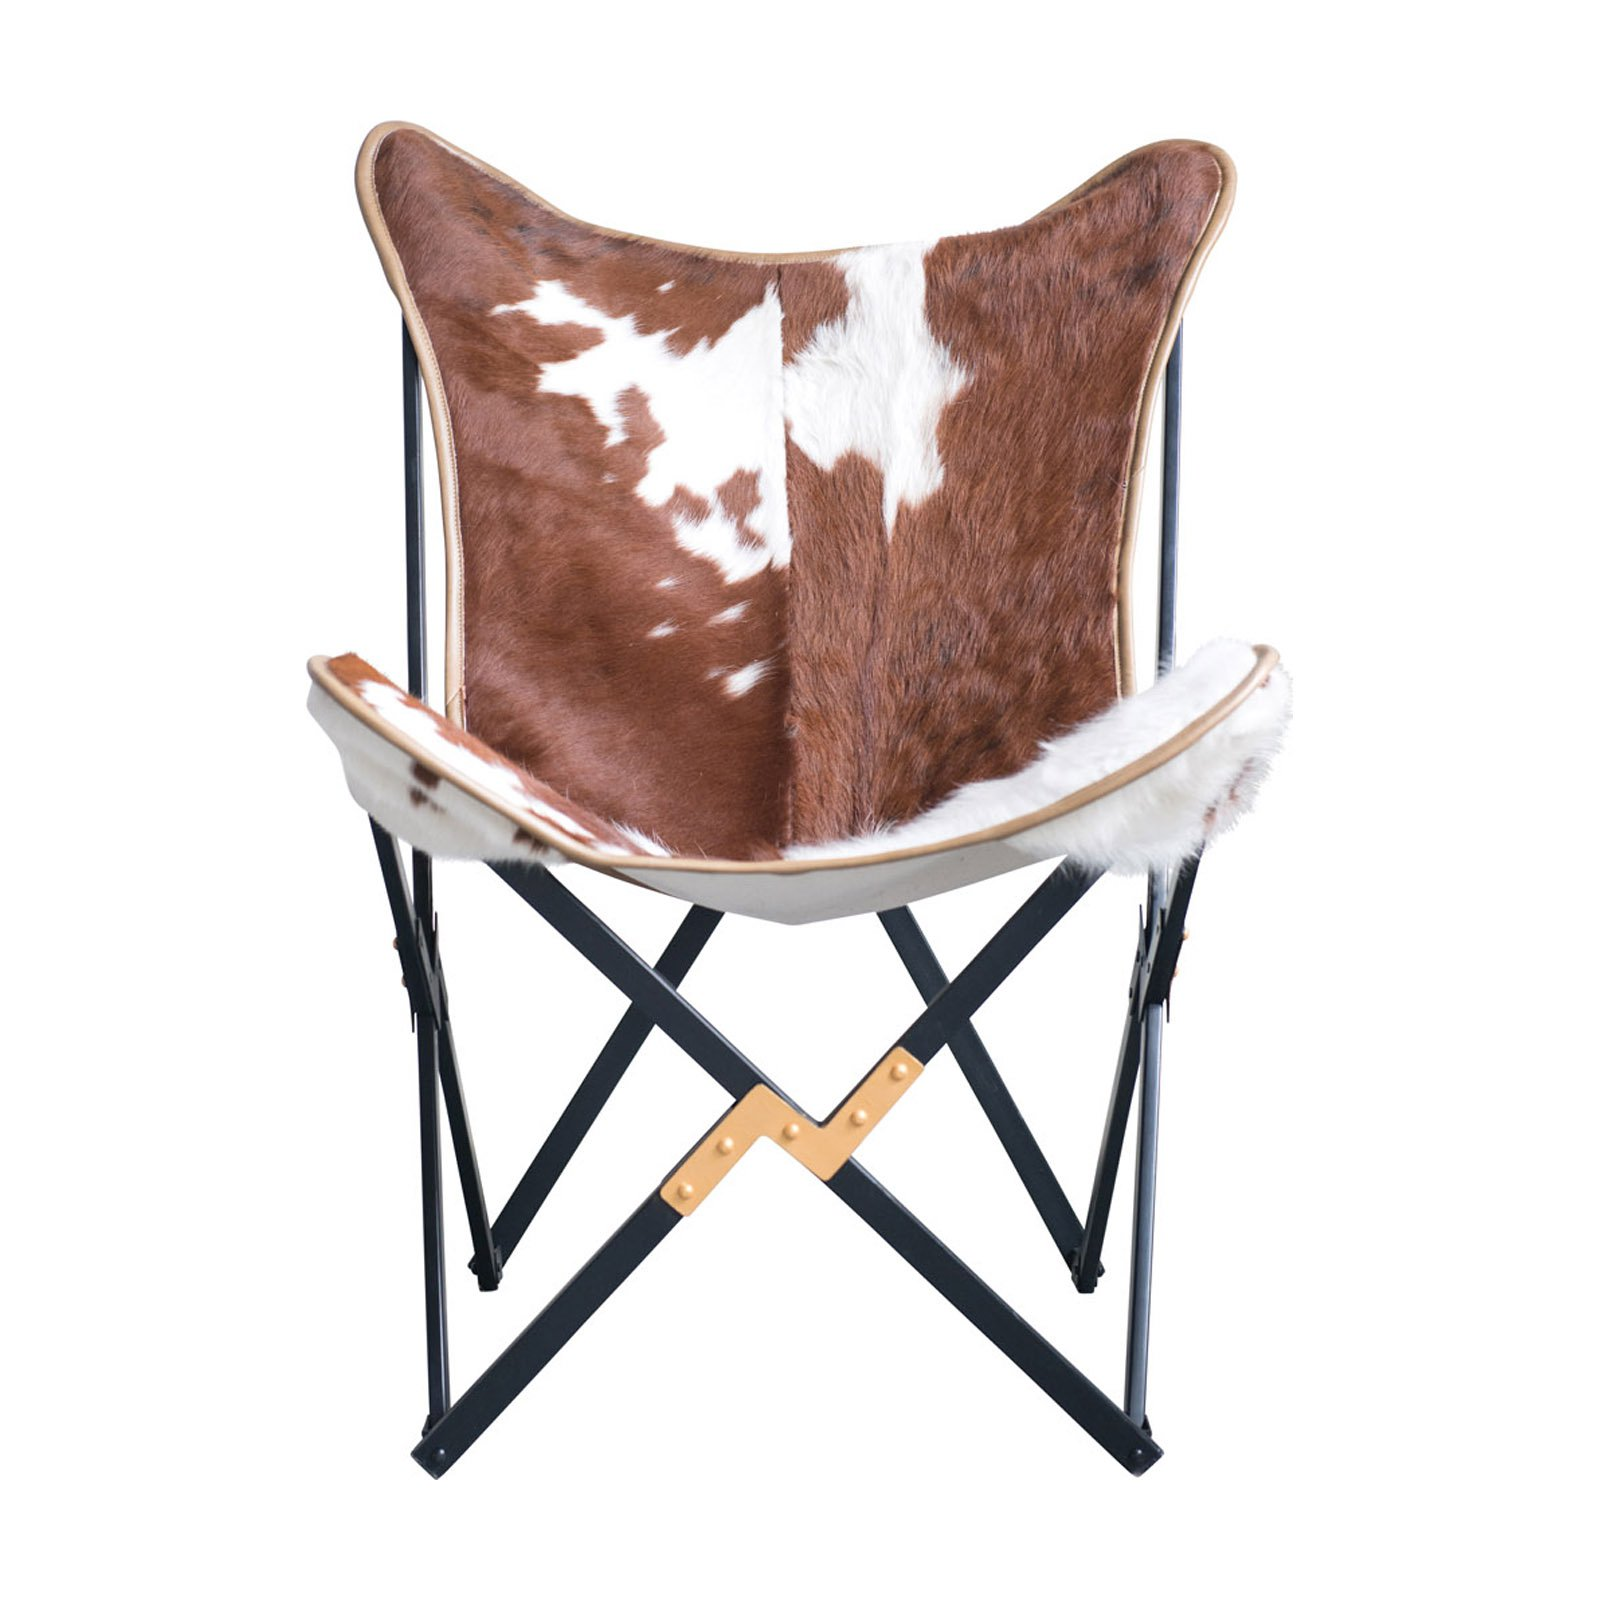 Butterfly Folding Chair 3r Studios Cowhide Folding Butterfly Chair With Black And Gold Metal Base